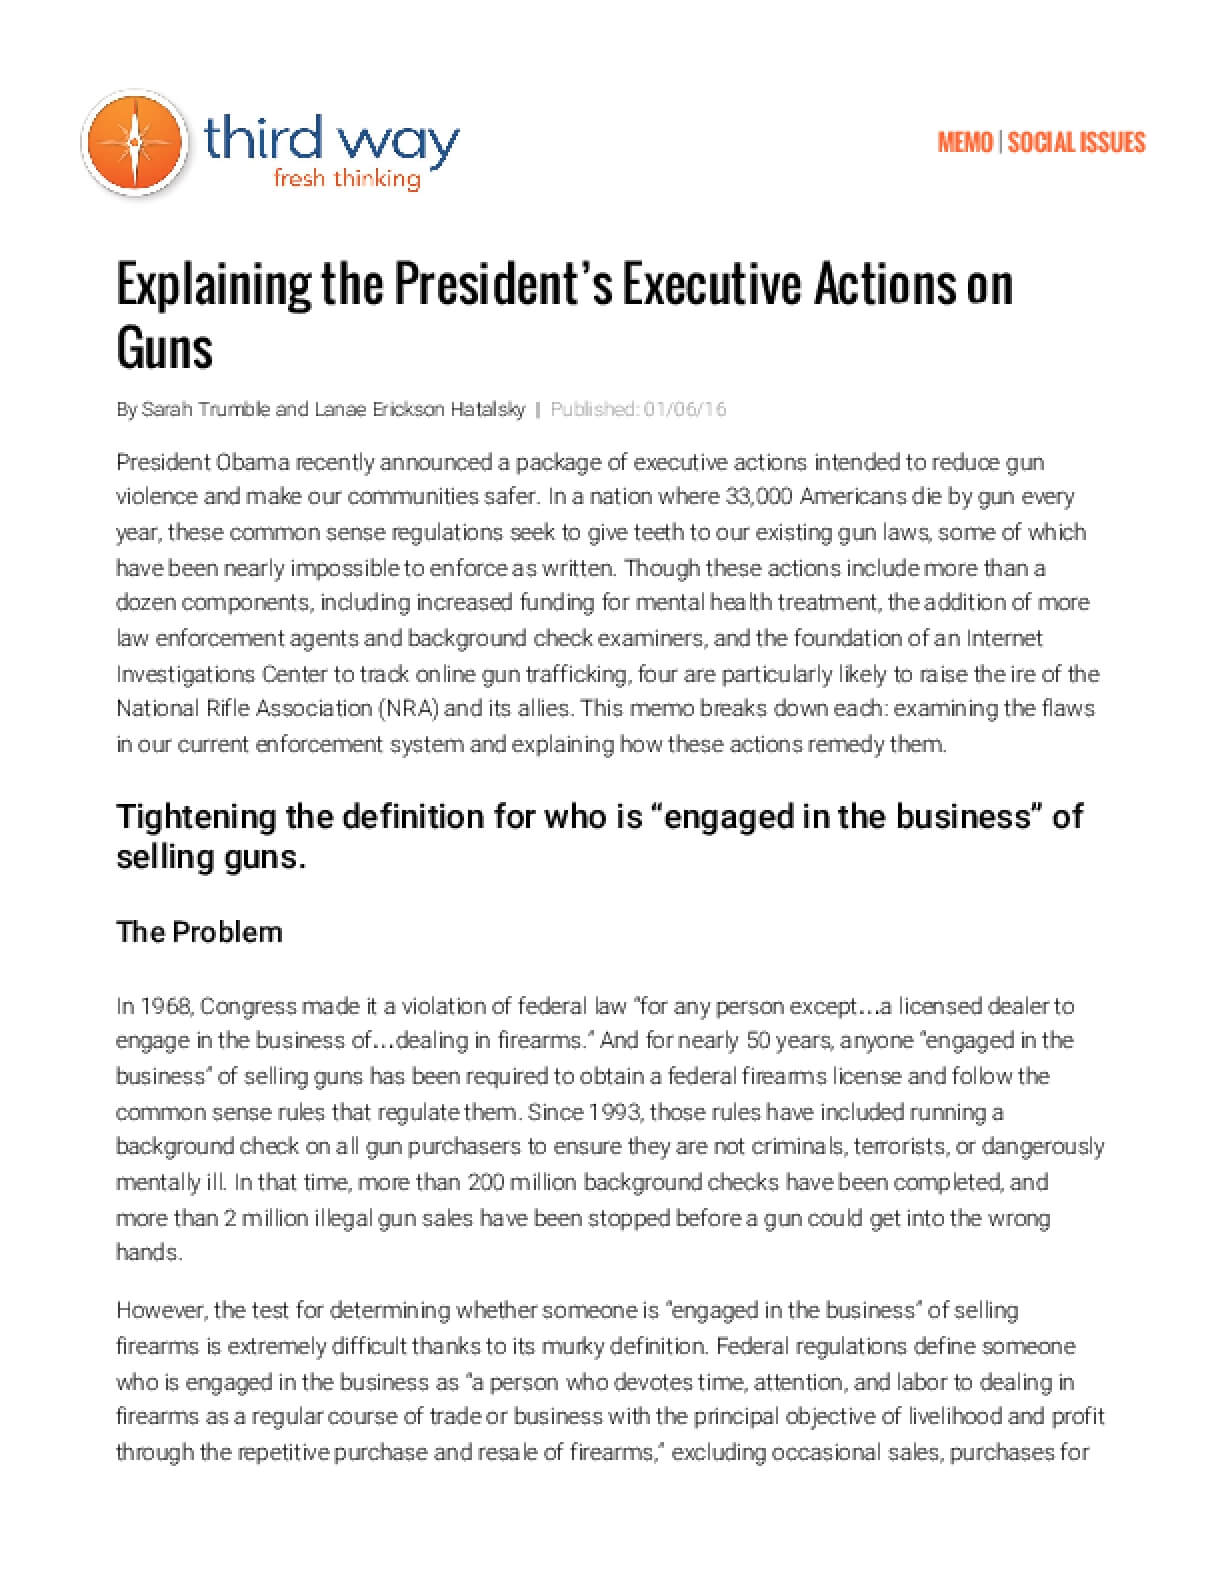 Explaining the President's Executive Actions on Guns